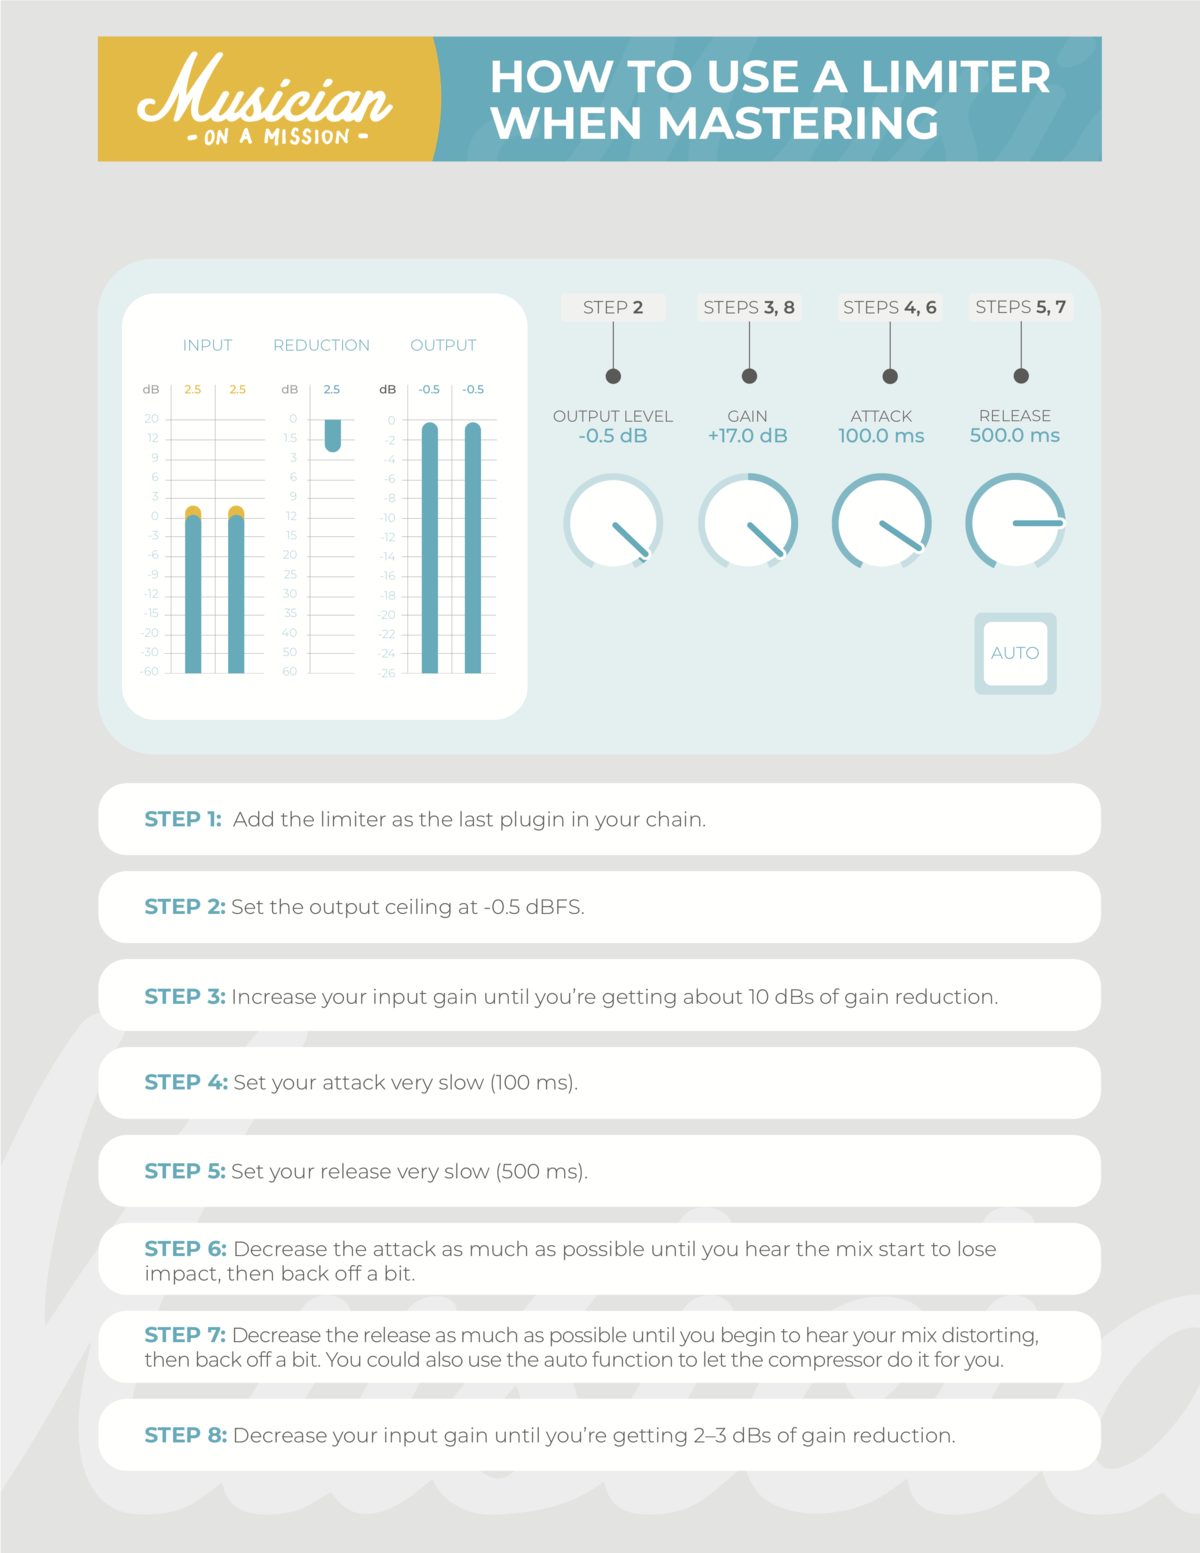 How to Use a Limiter When Mastering Infographic